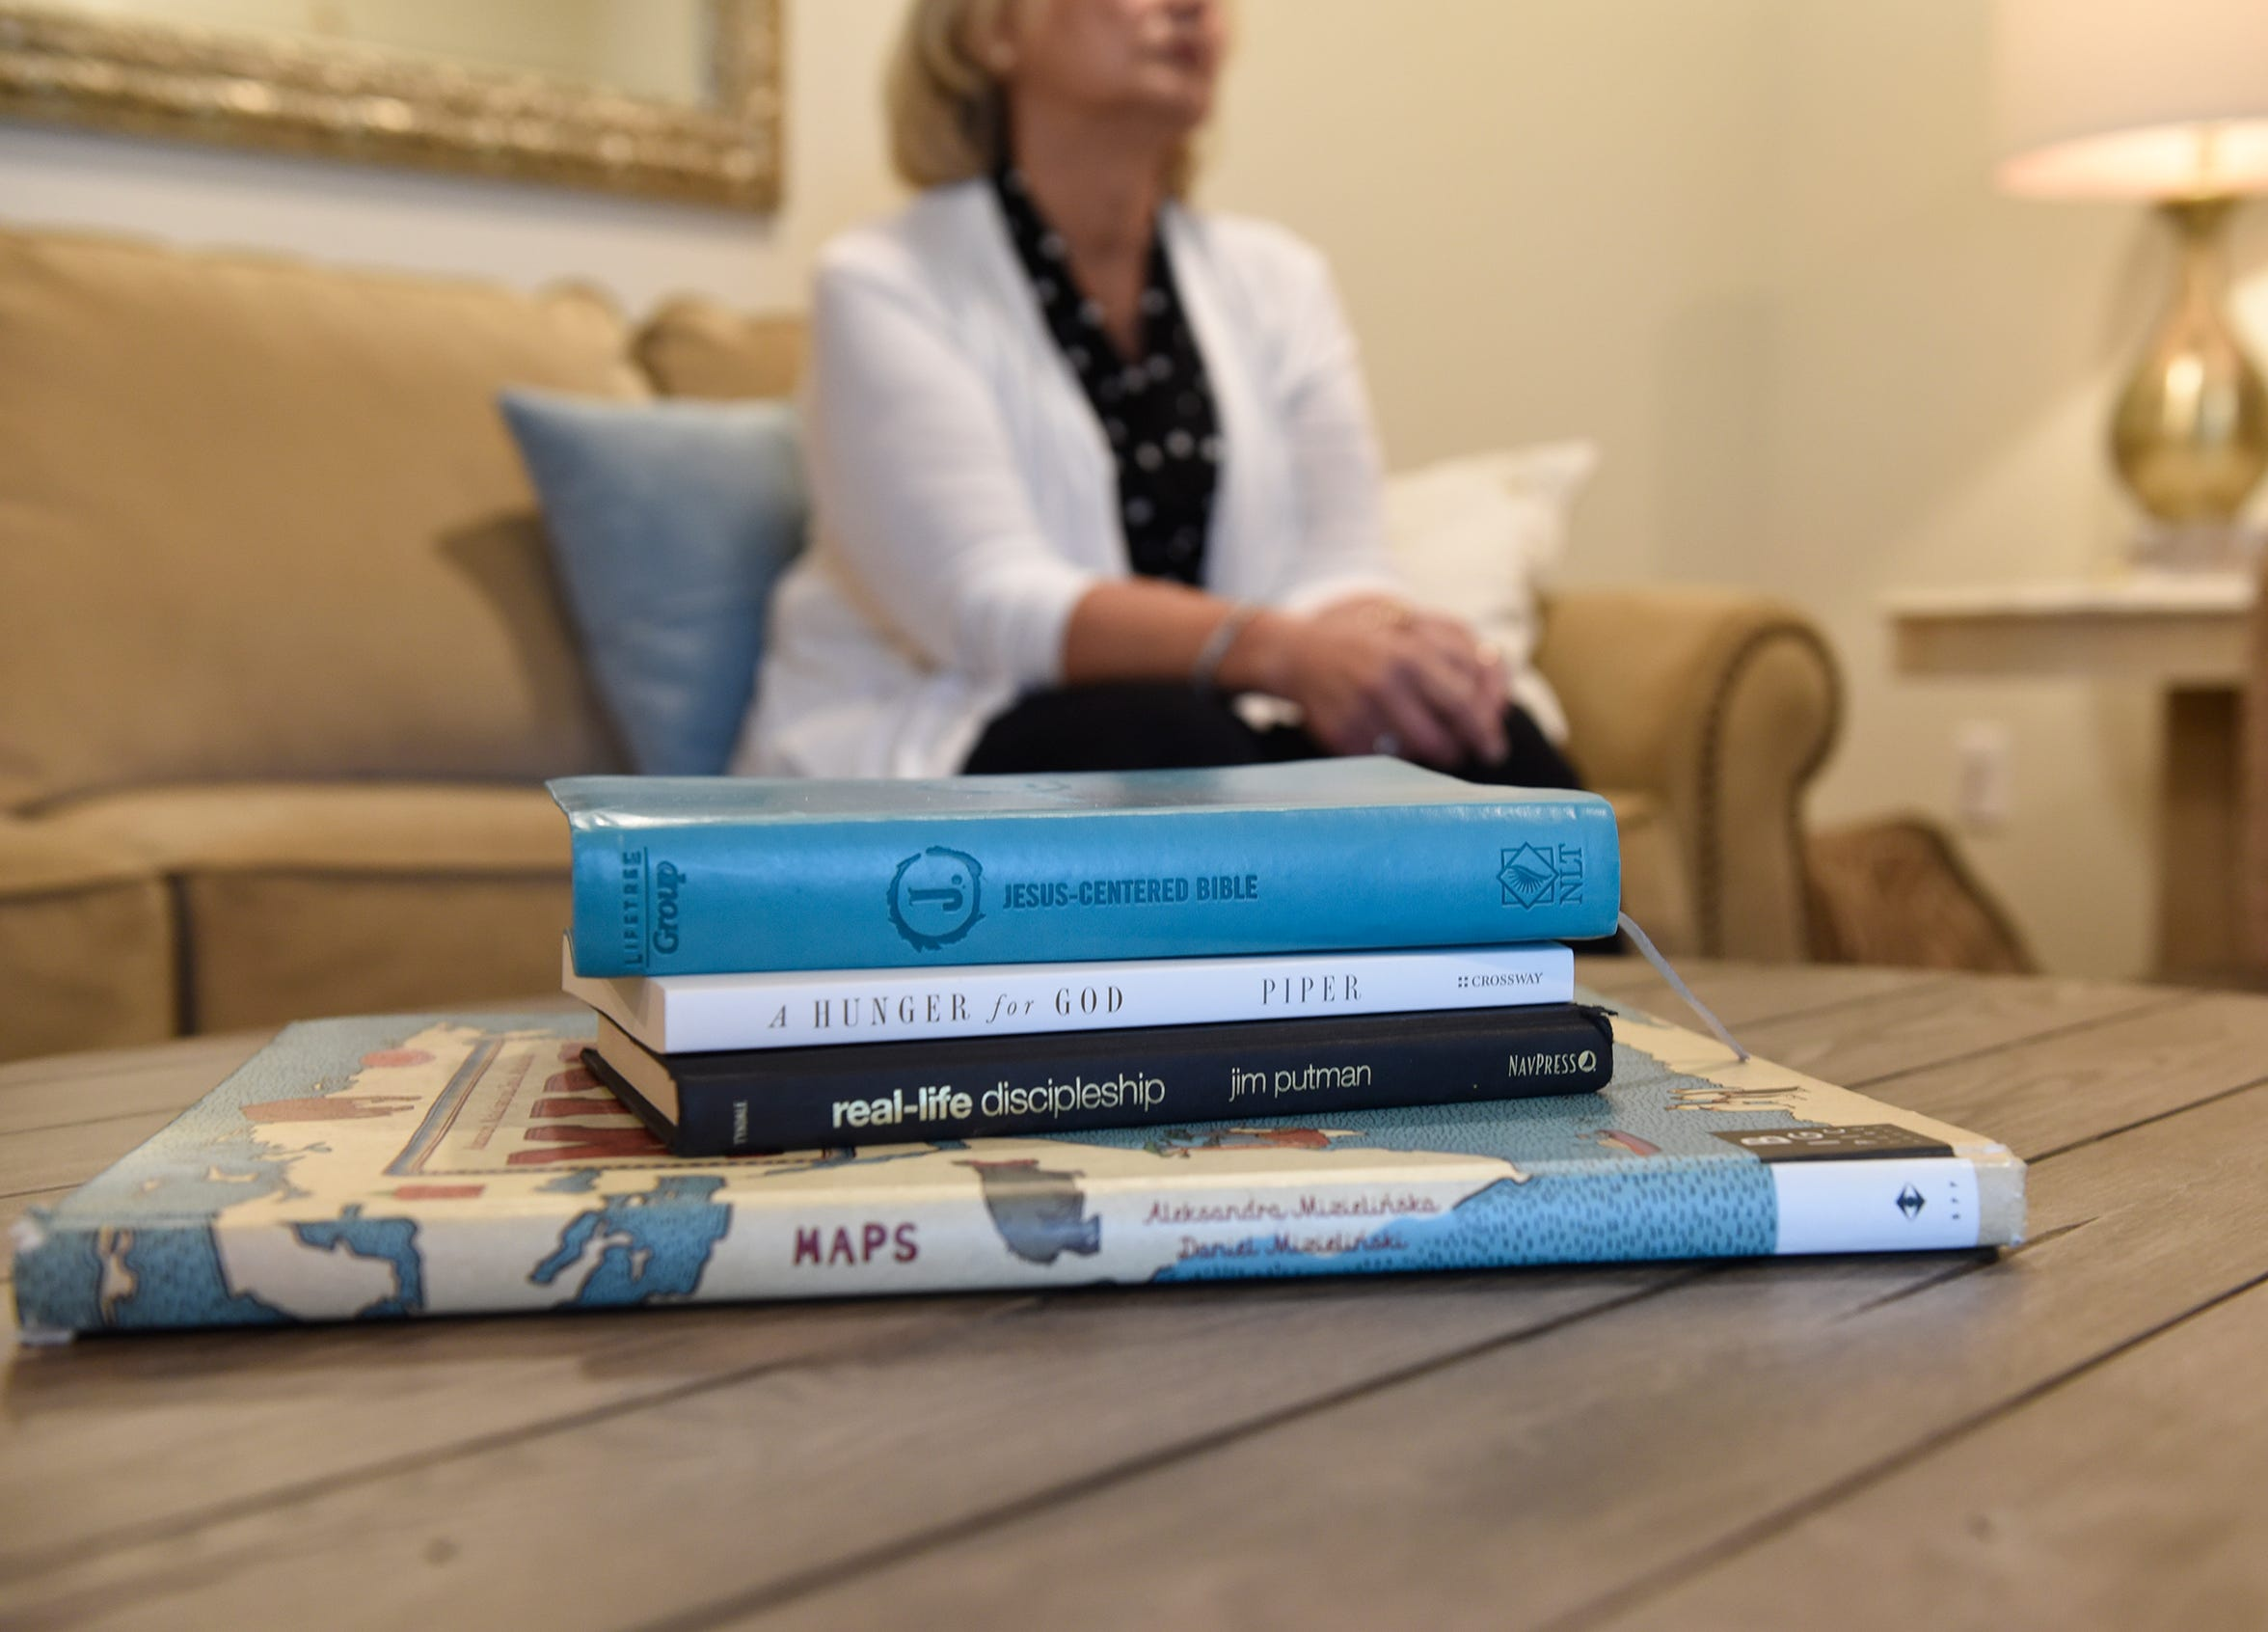 Books in Samantha Grimsley's home provide examples of why she feels it's her mission to love her neighbors, Wednesday, July 17, 2019.